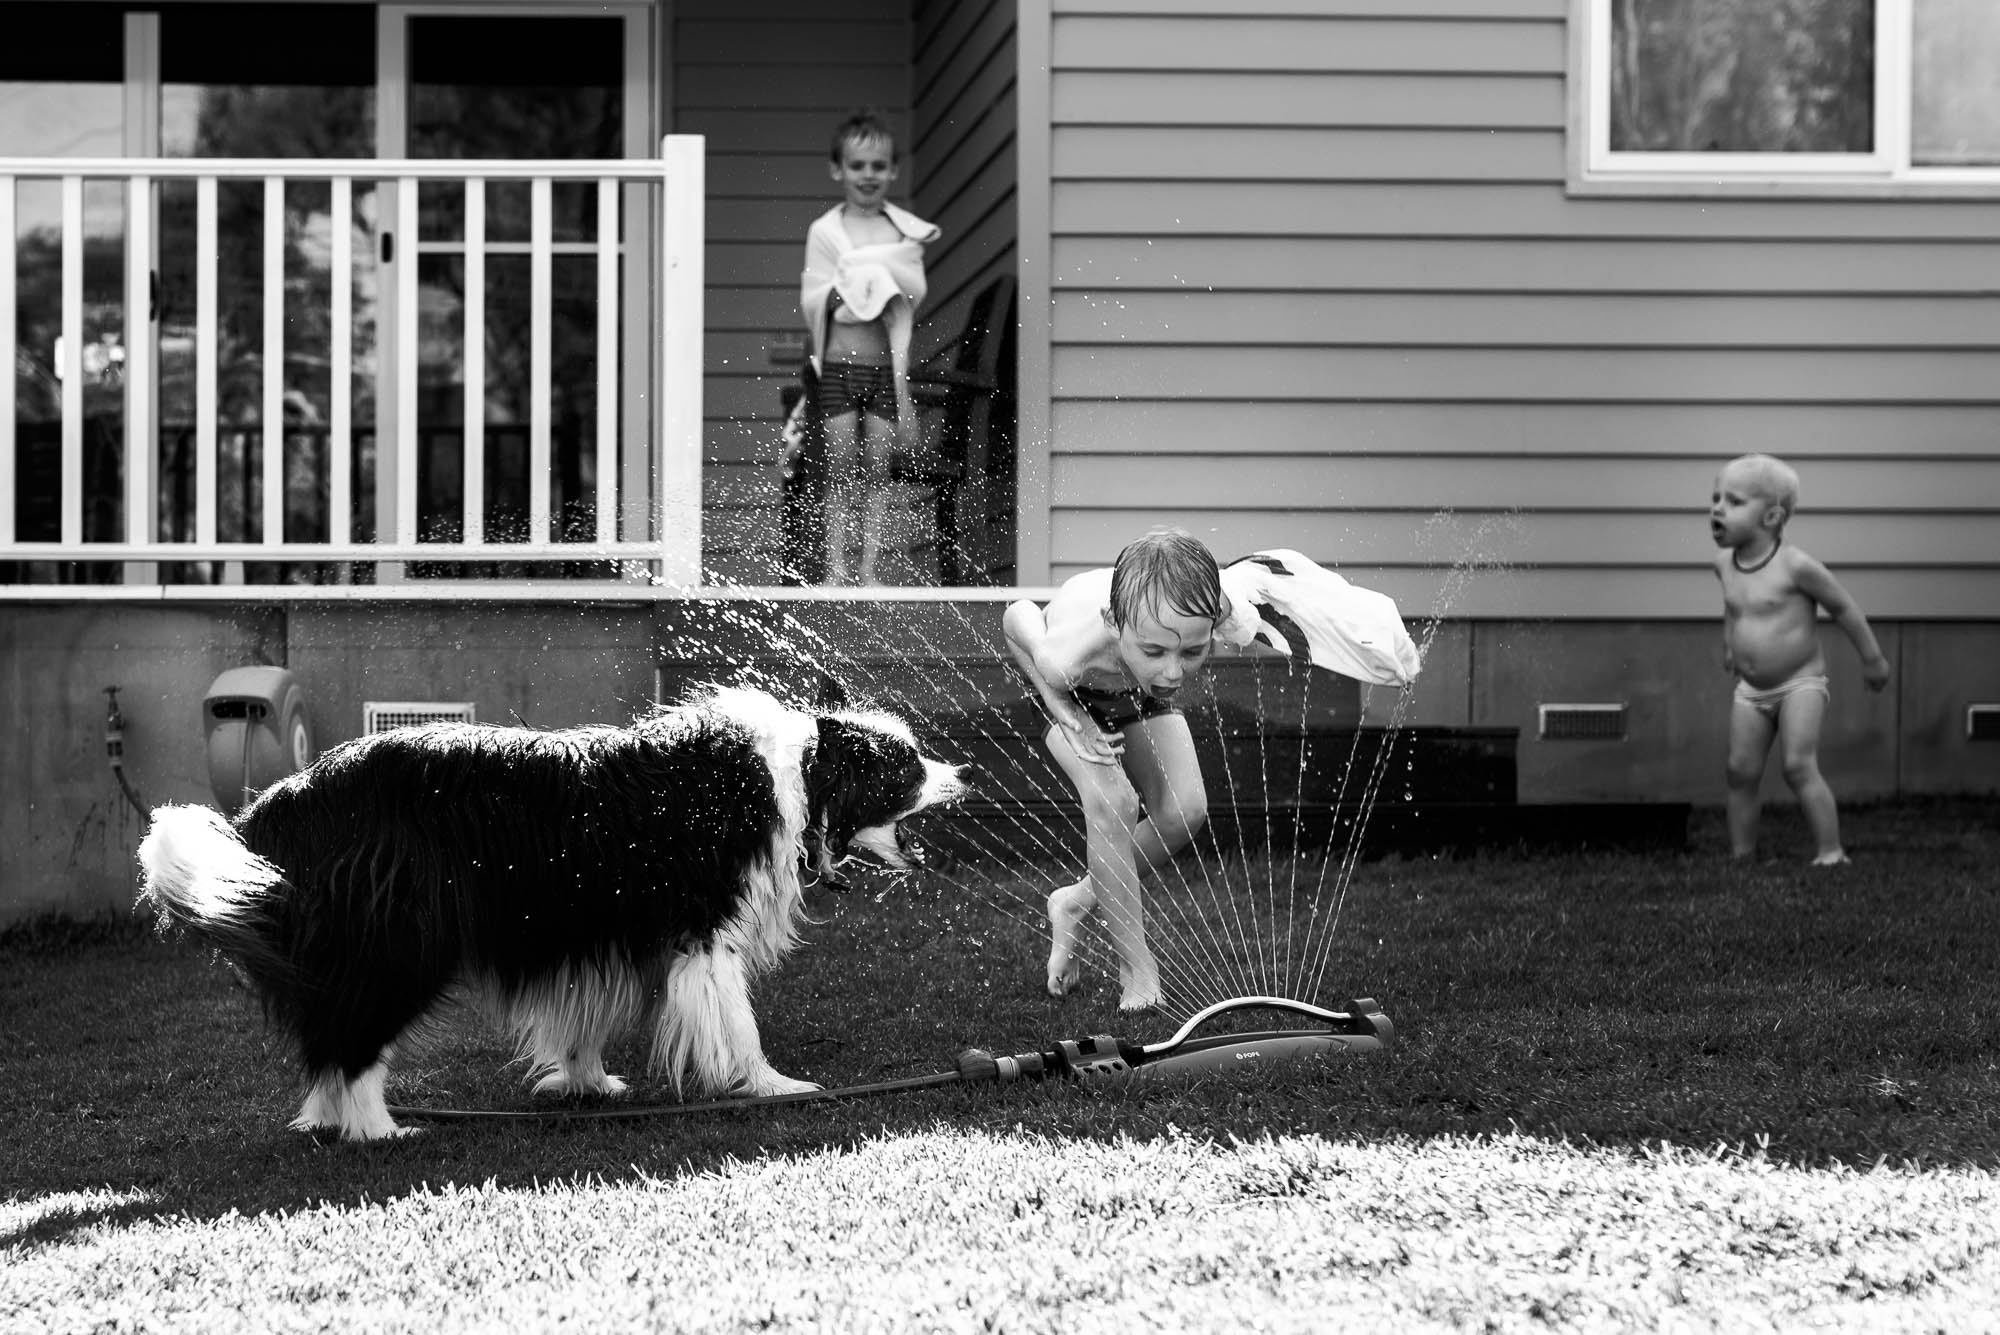 melbourne_family_photographer_children_playing_in_sprinkler_with_dog-1.jpg